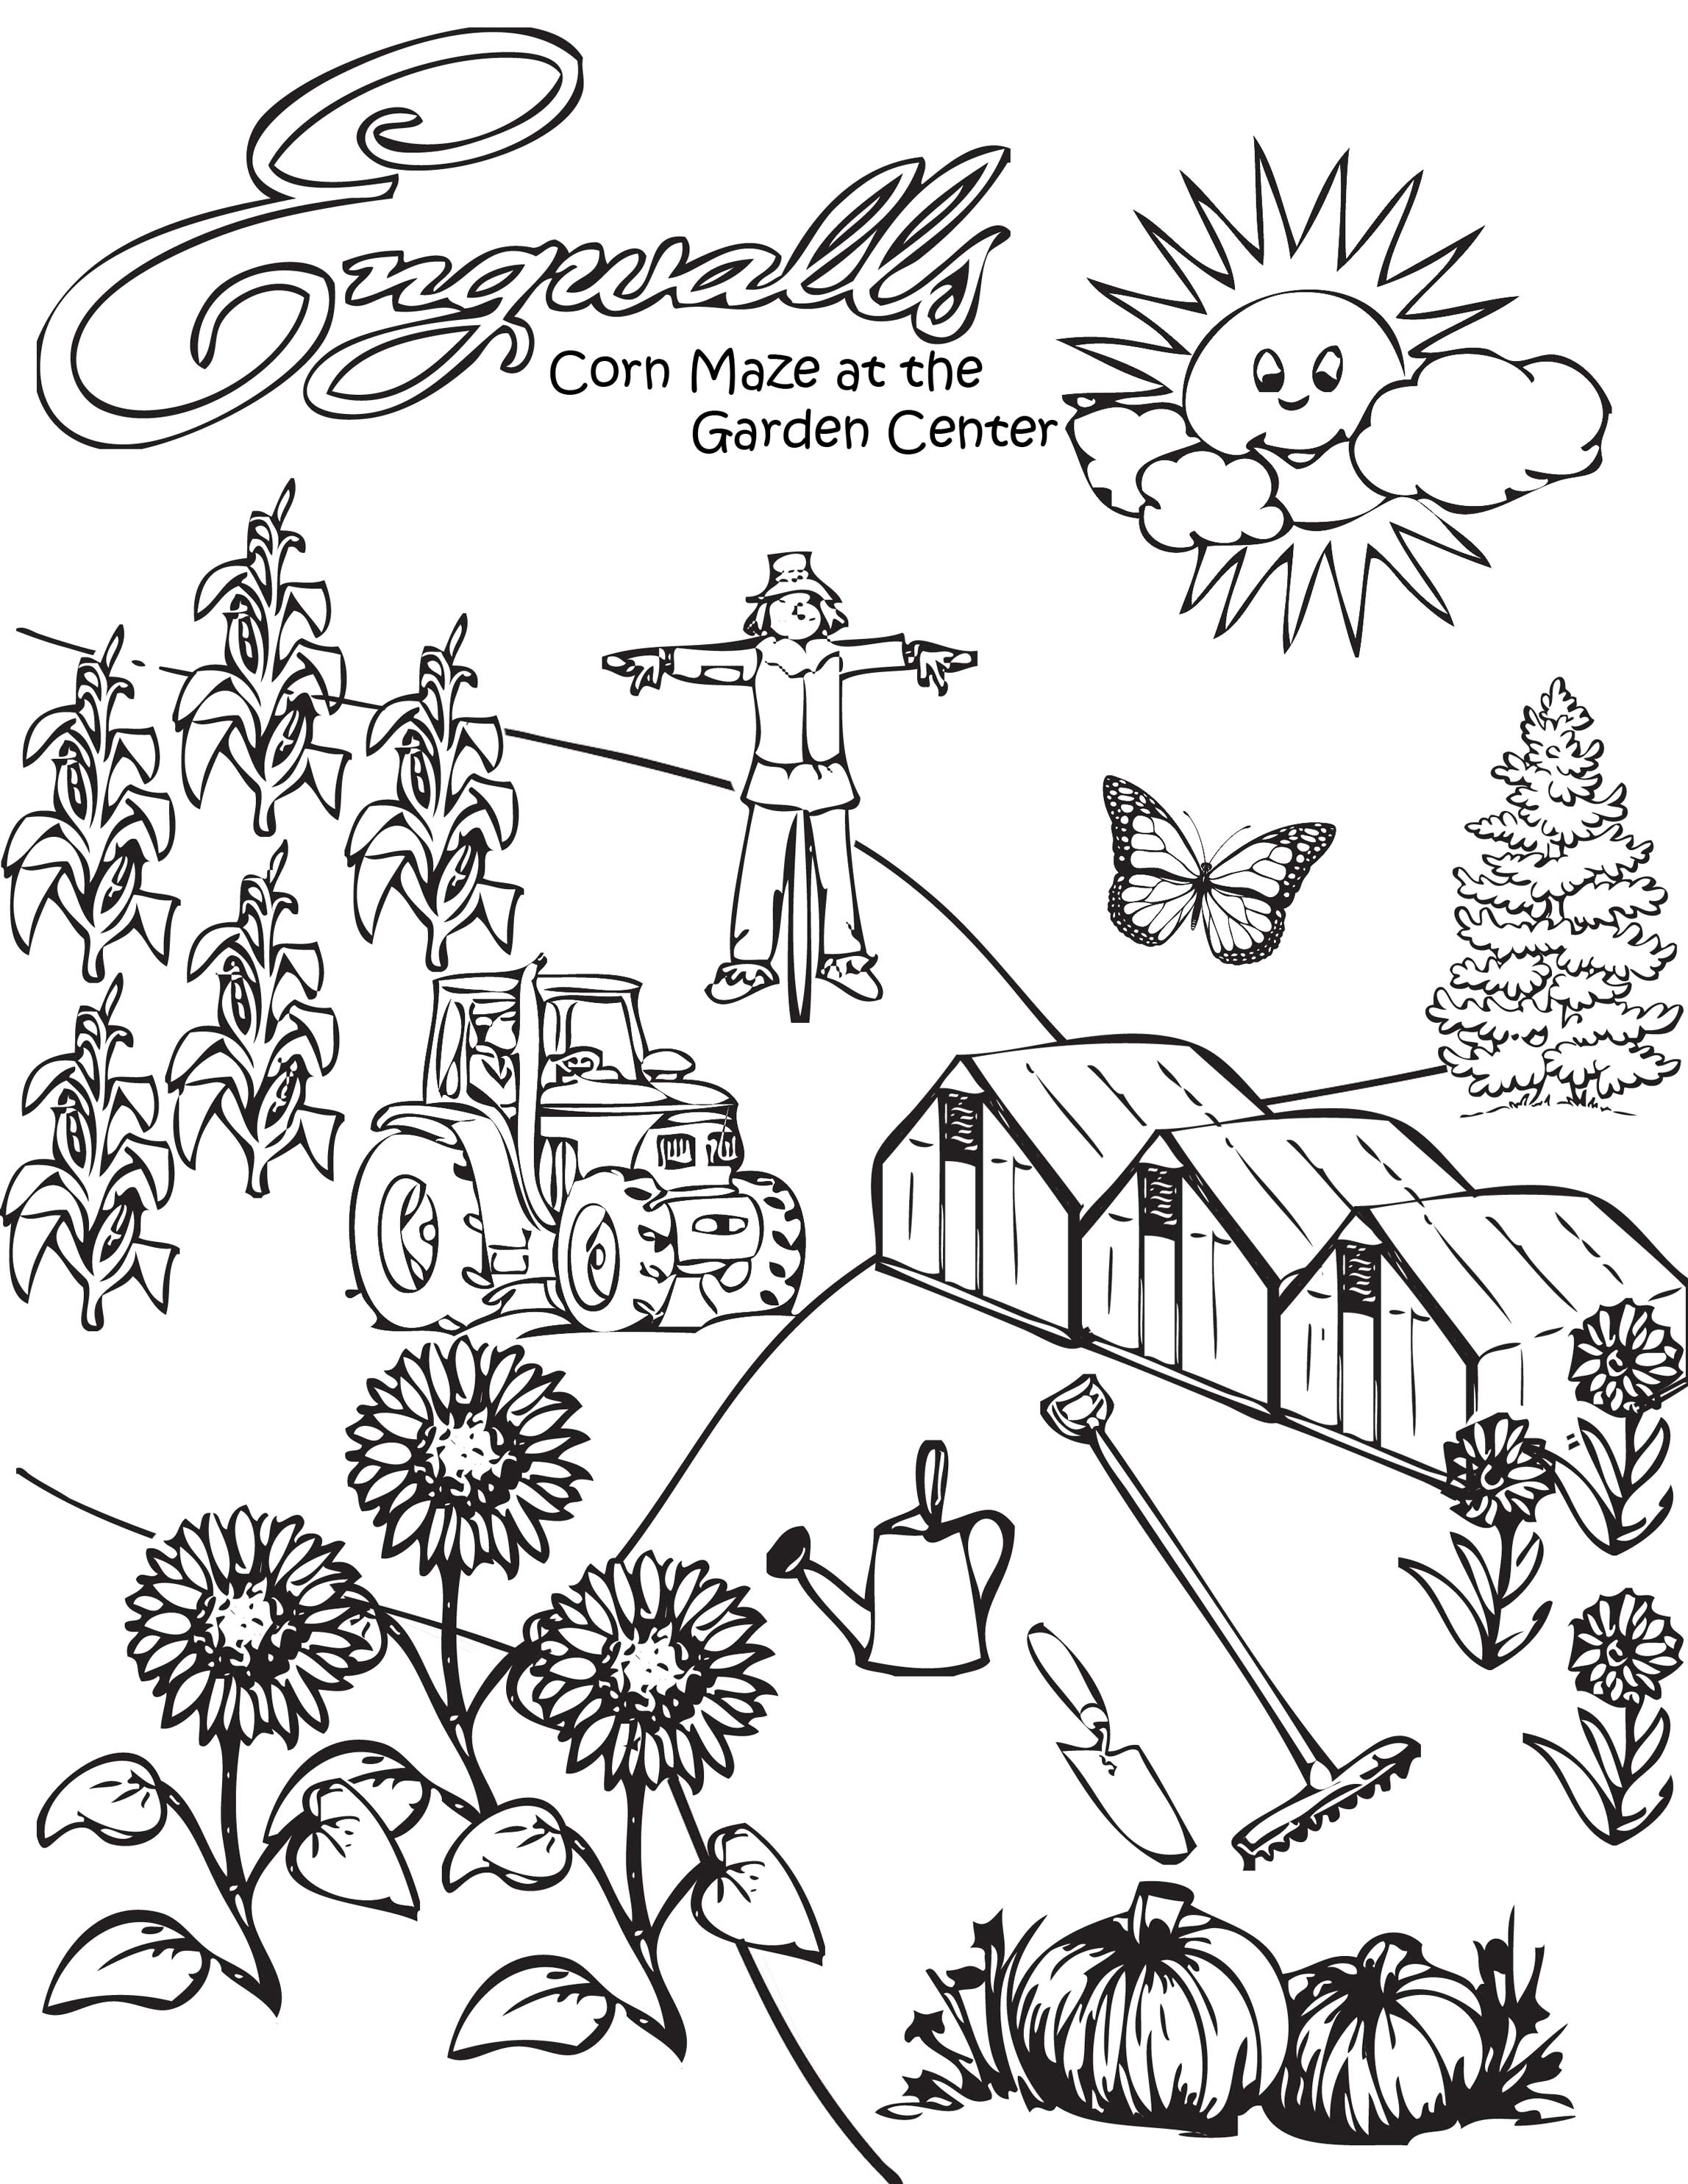 corn stalks drawing at getdrawings com free for personal use corn